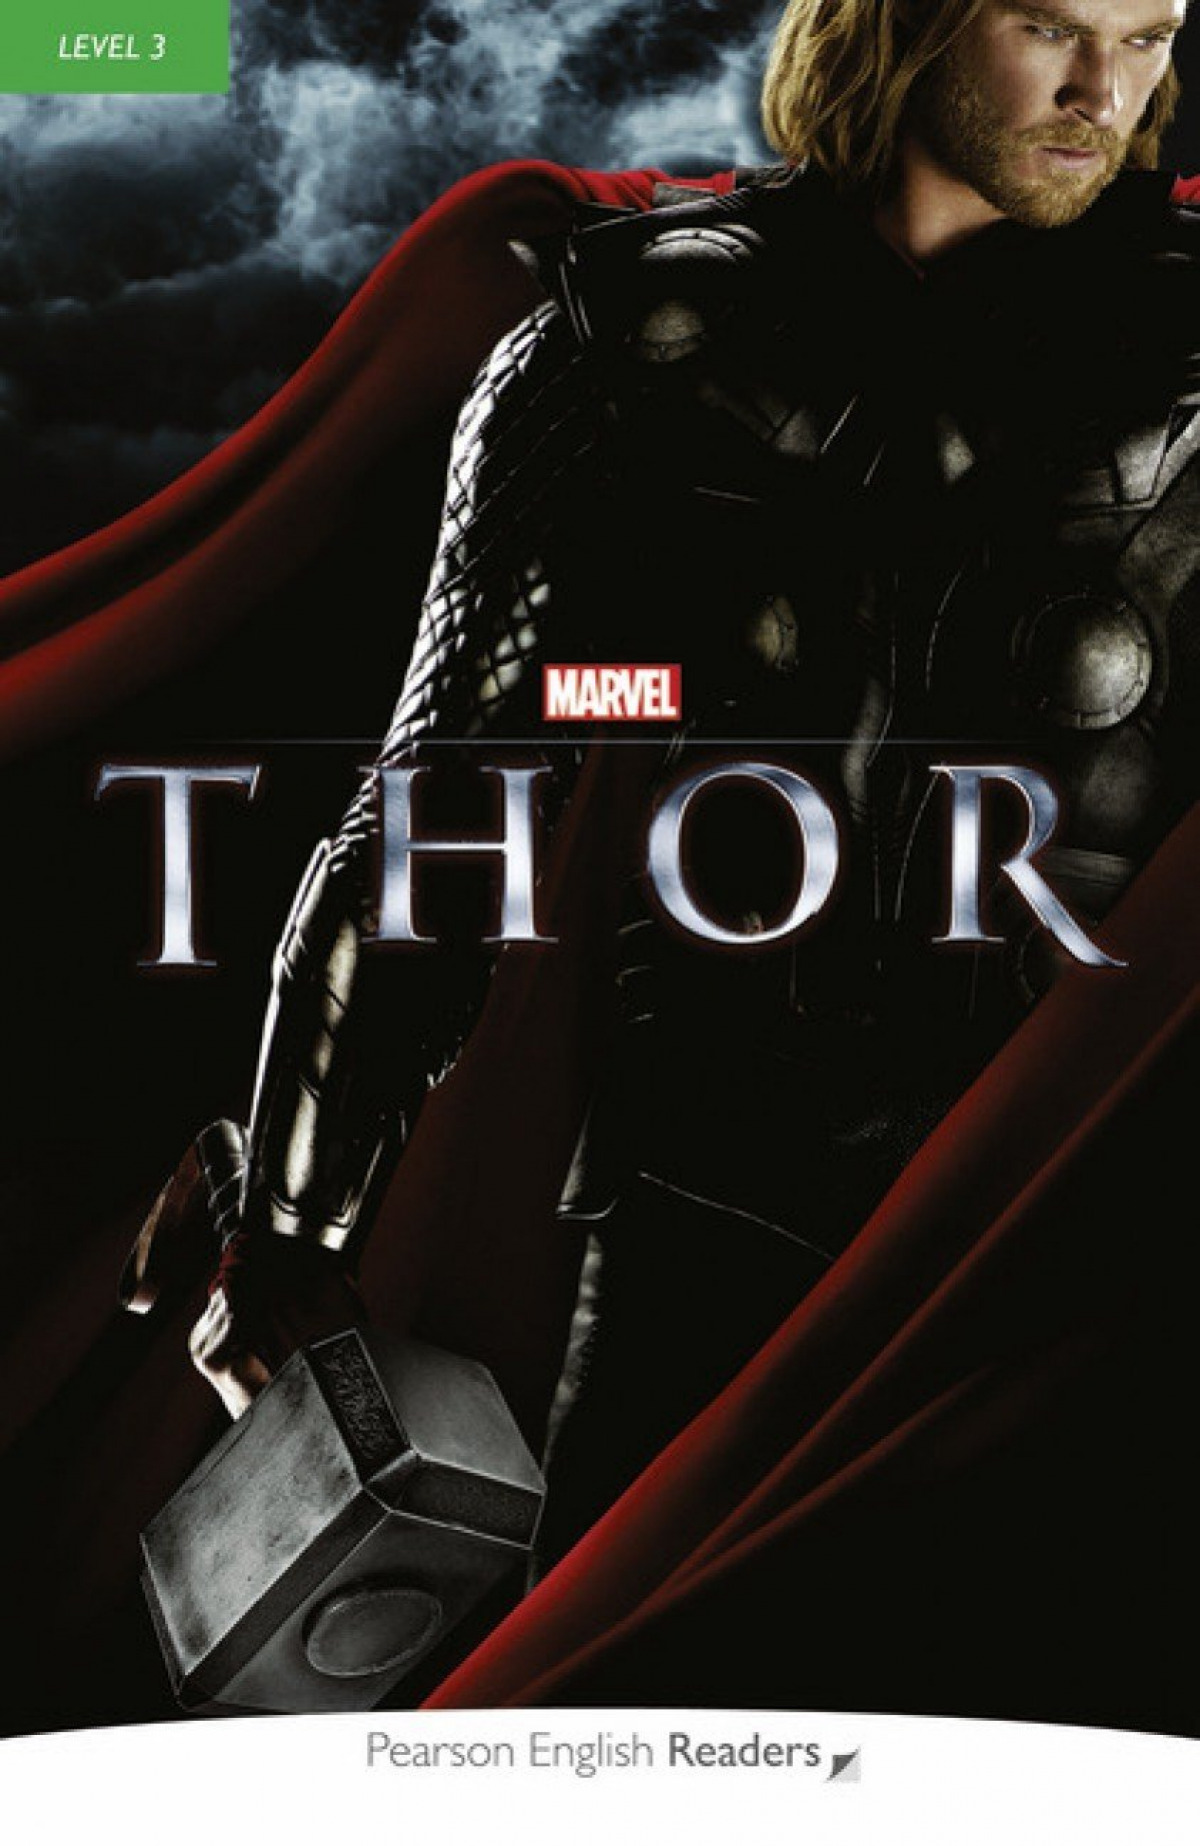 MARVEL'THOR (LEVEL 3)